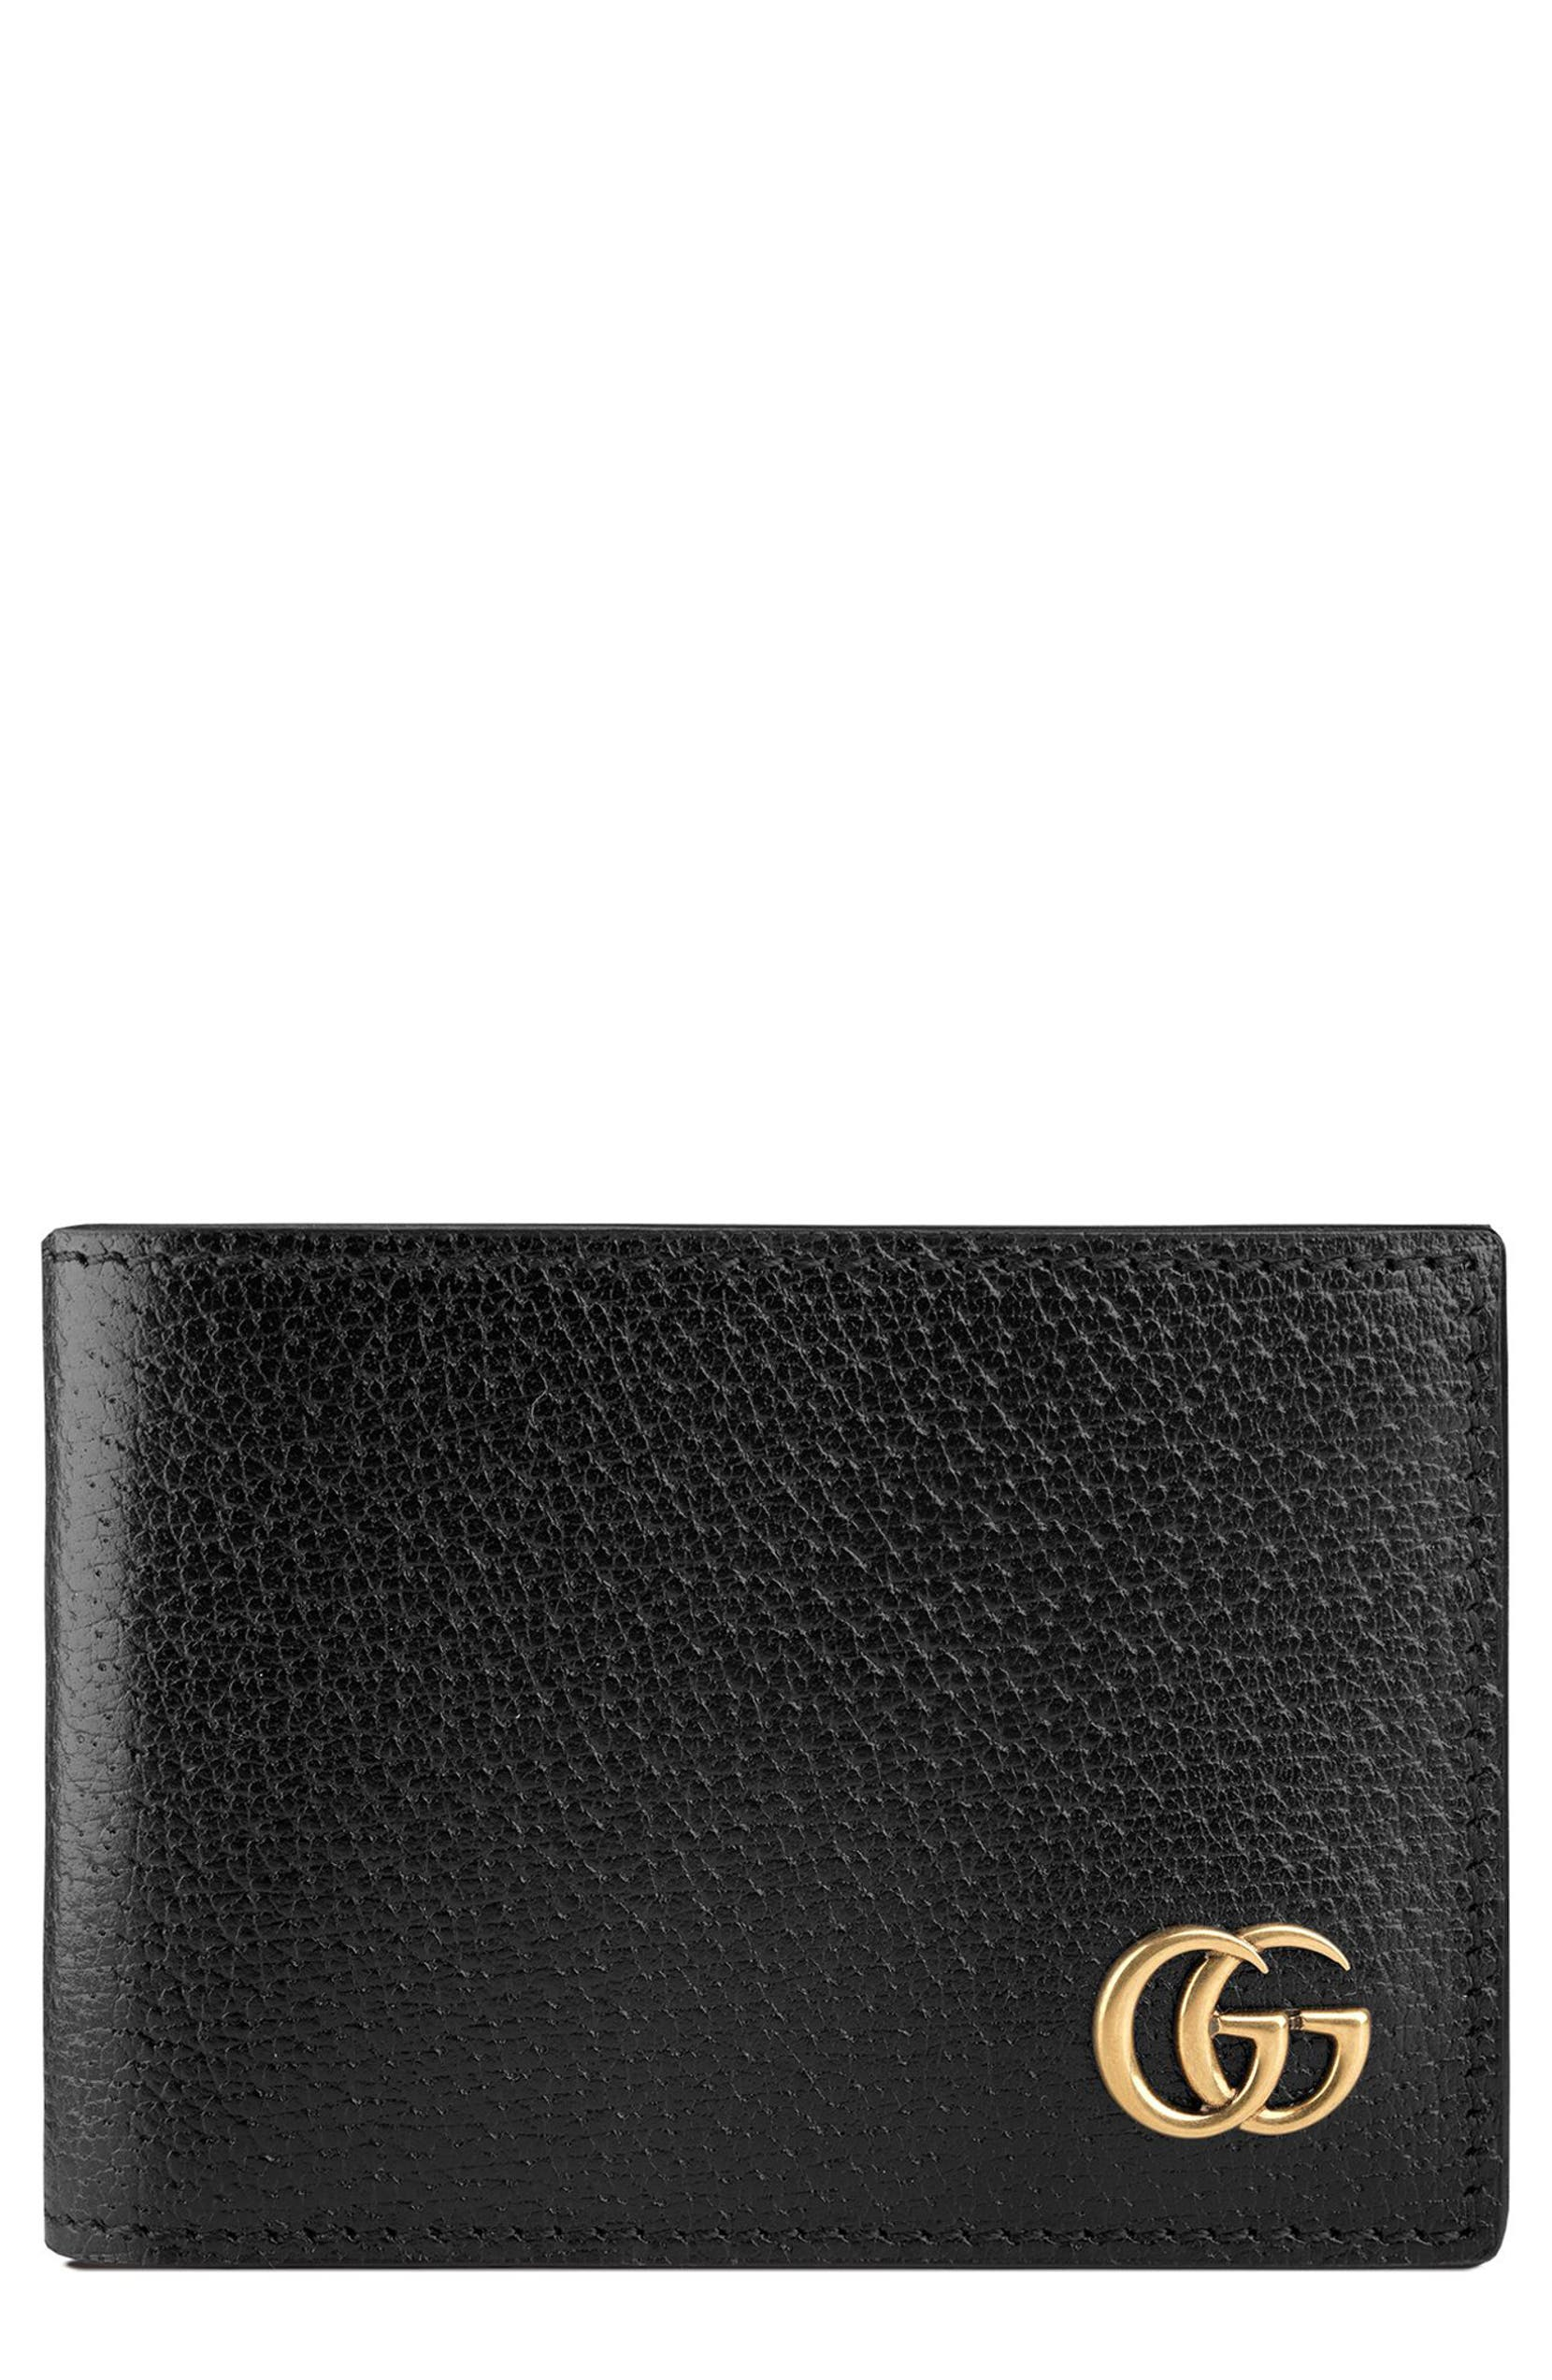 75cabb84f4 Gucci Marmont Leather Wallet | Nordstrom